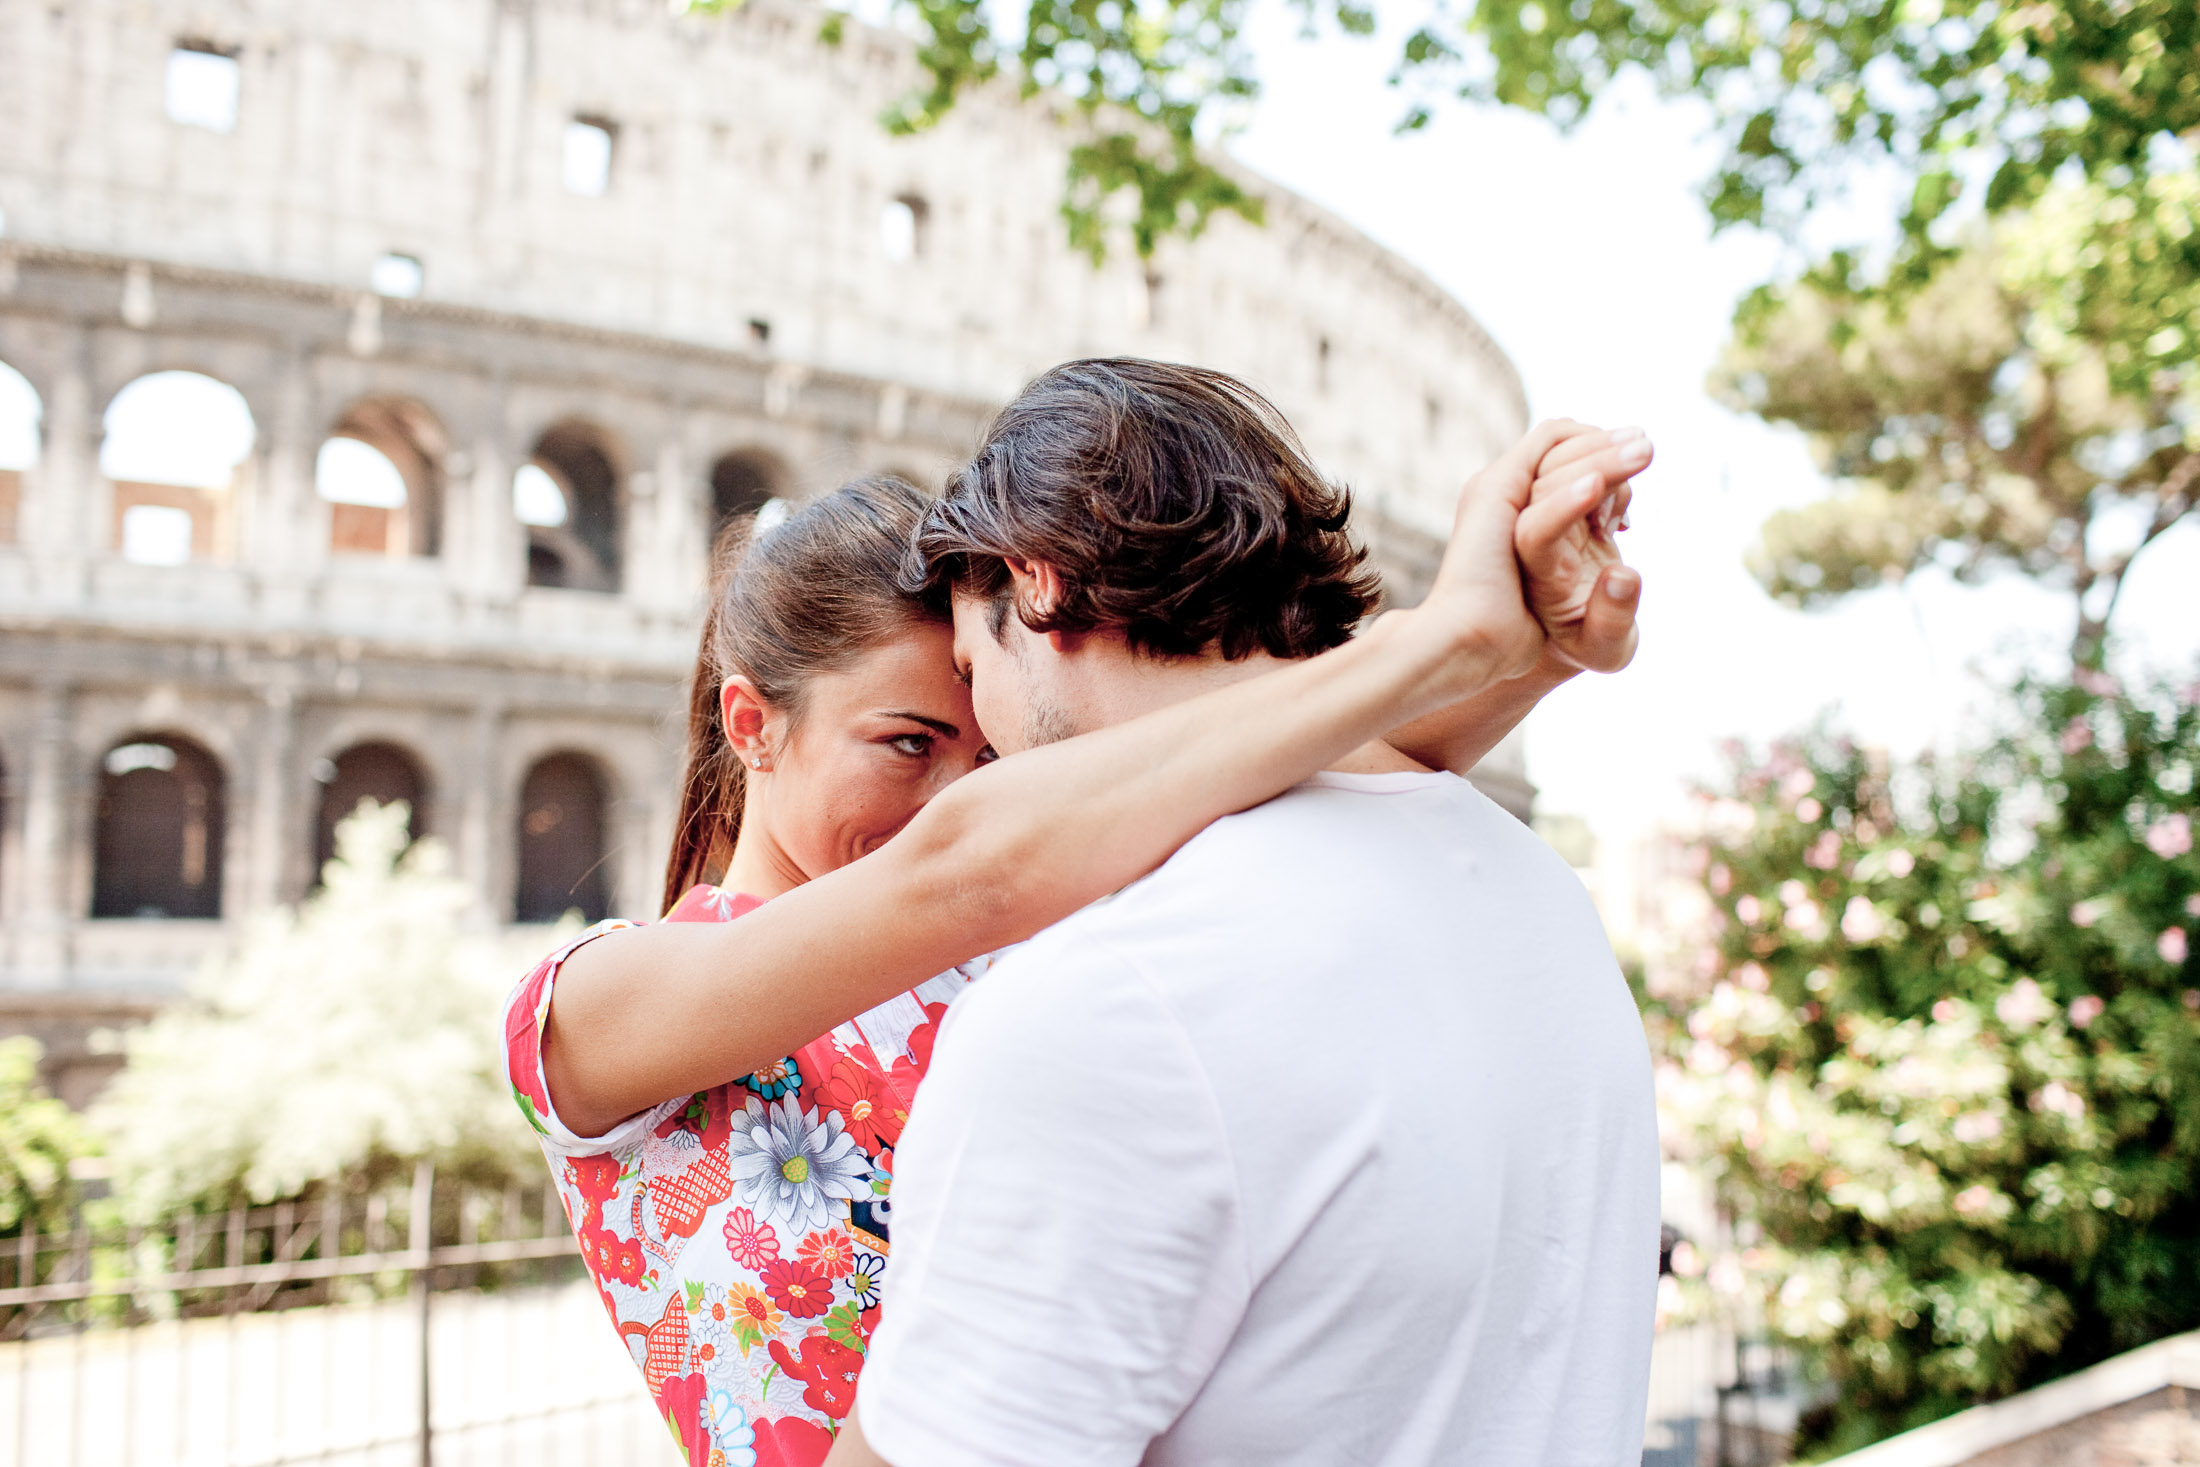 Couple traveling, Rome Italy